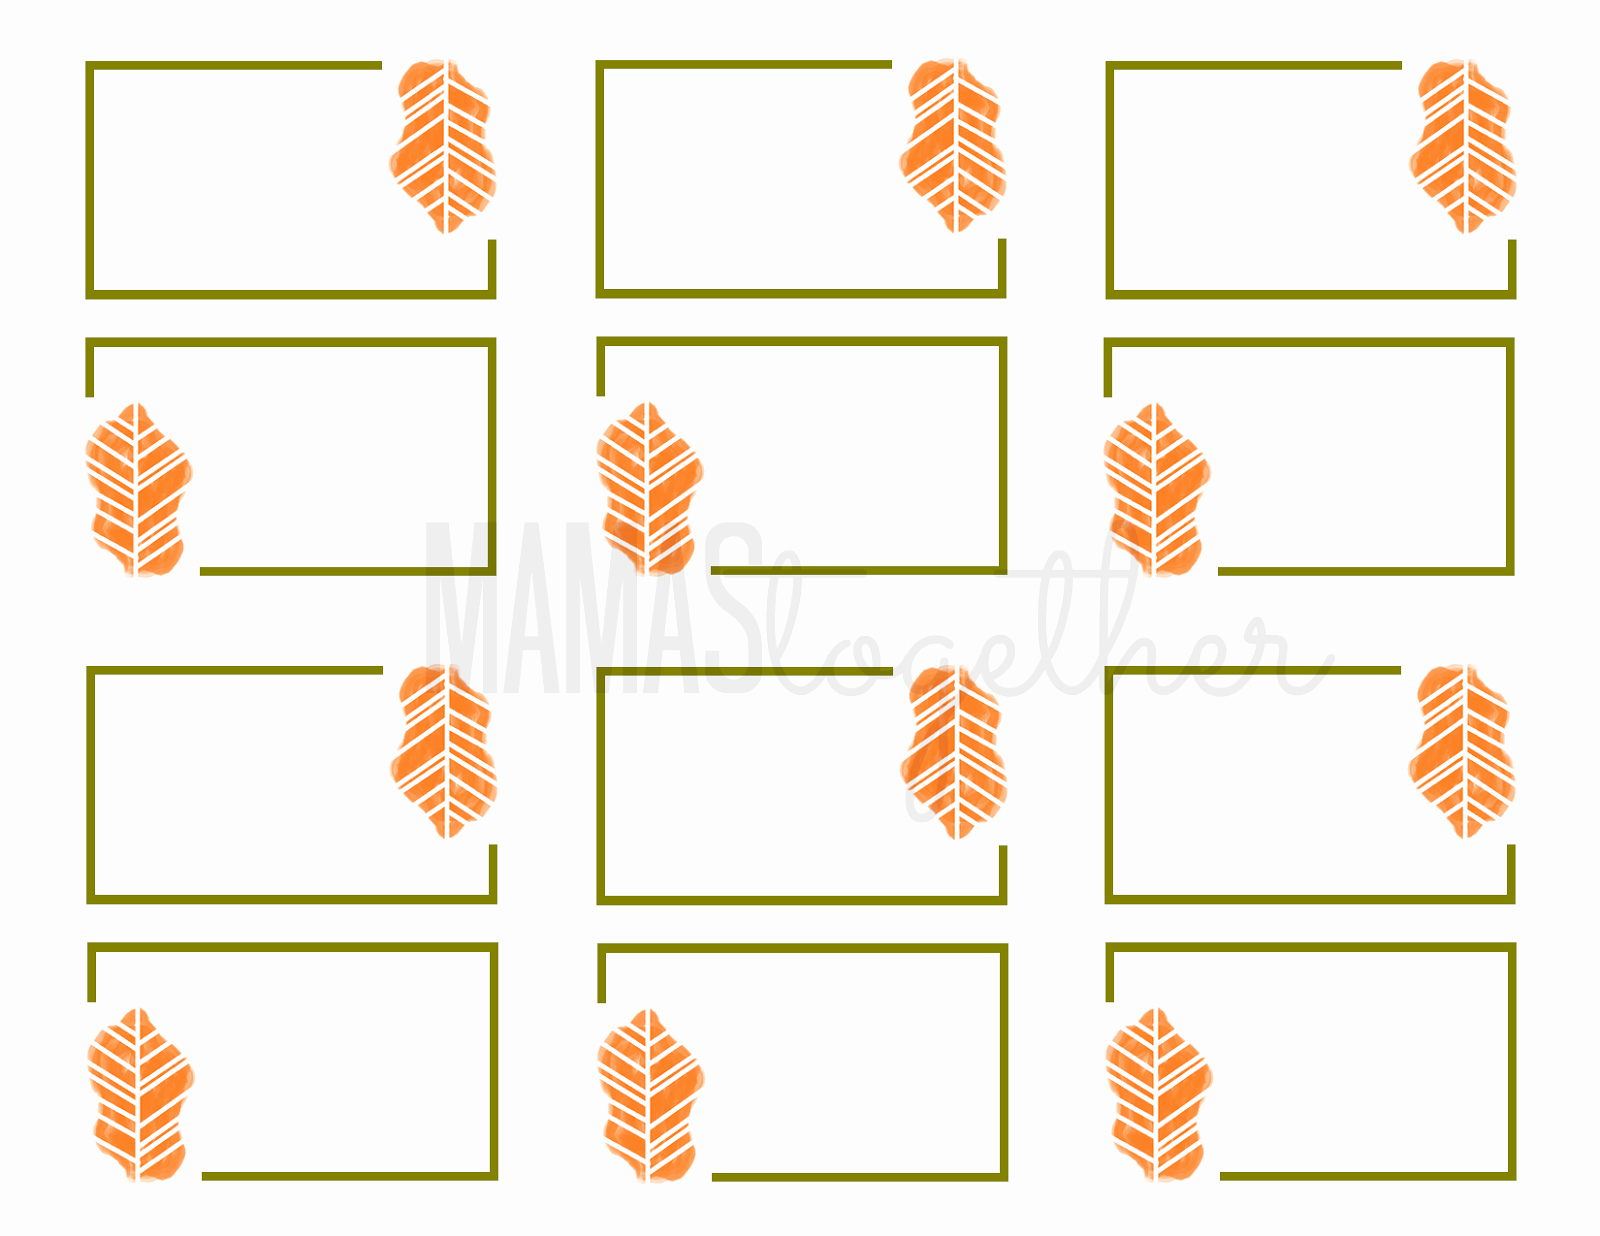 Blank Place Card Template Awesome Mamas to Her Thanksgiving Place Card Printables & Diy